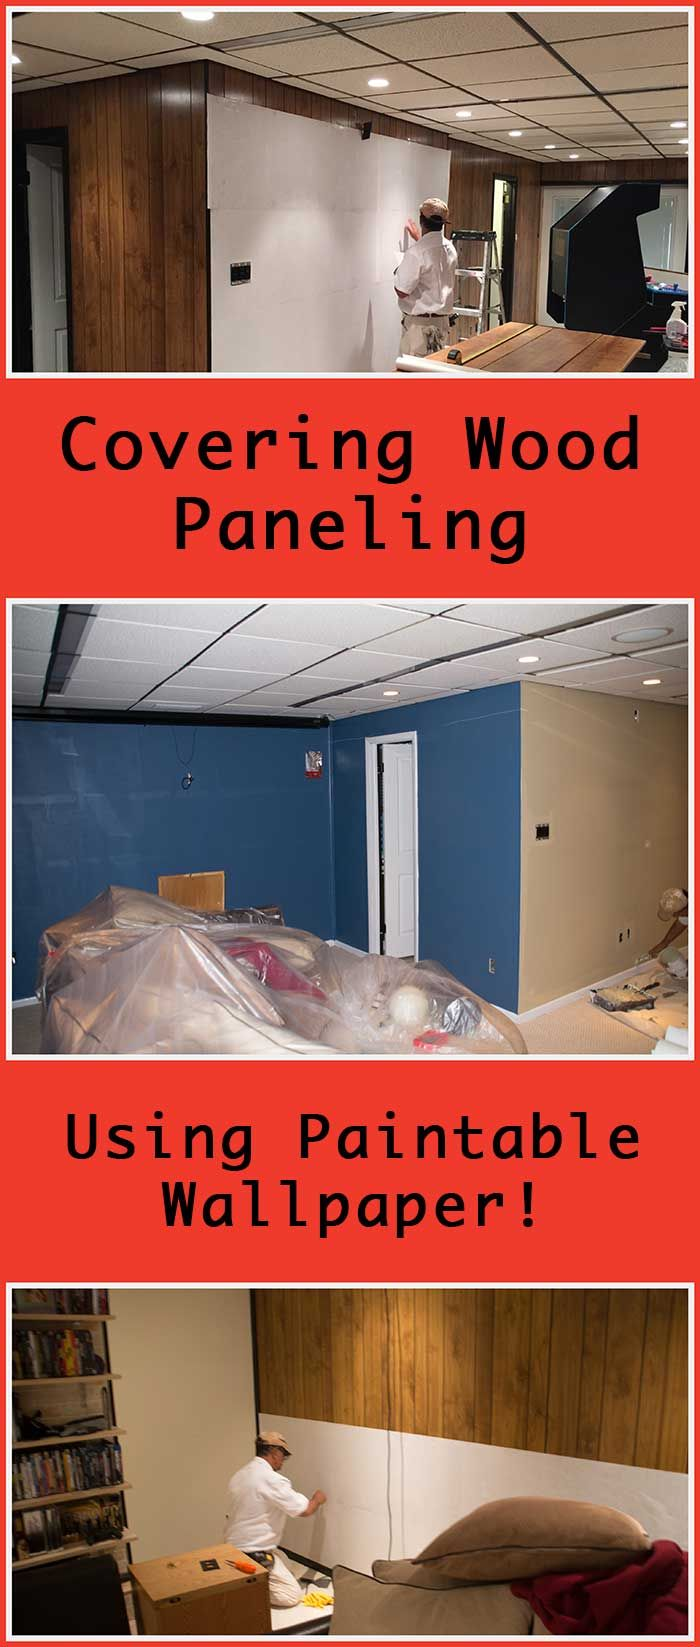 Using Paintable Wallpaper to Cover Wood Paneling Wood